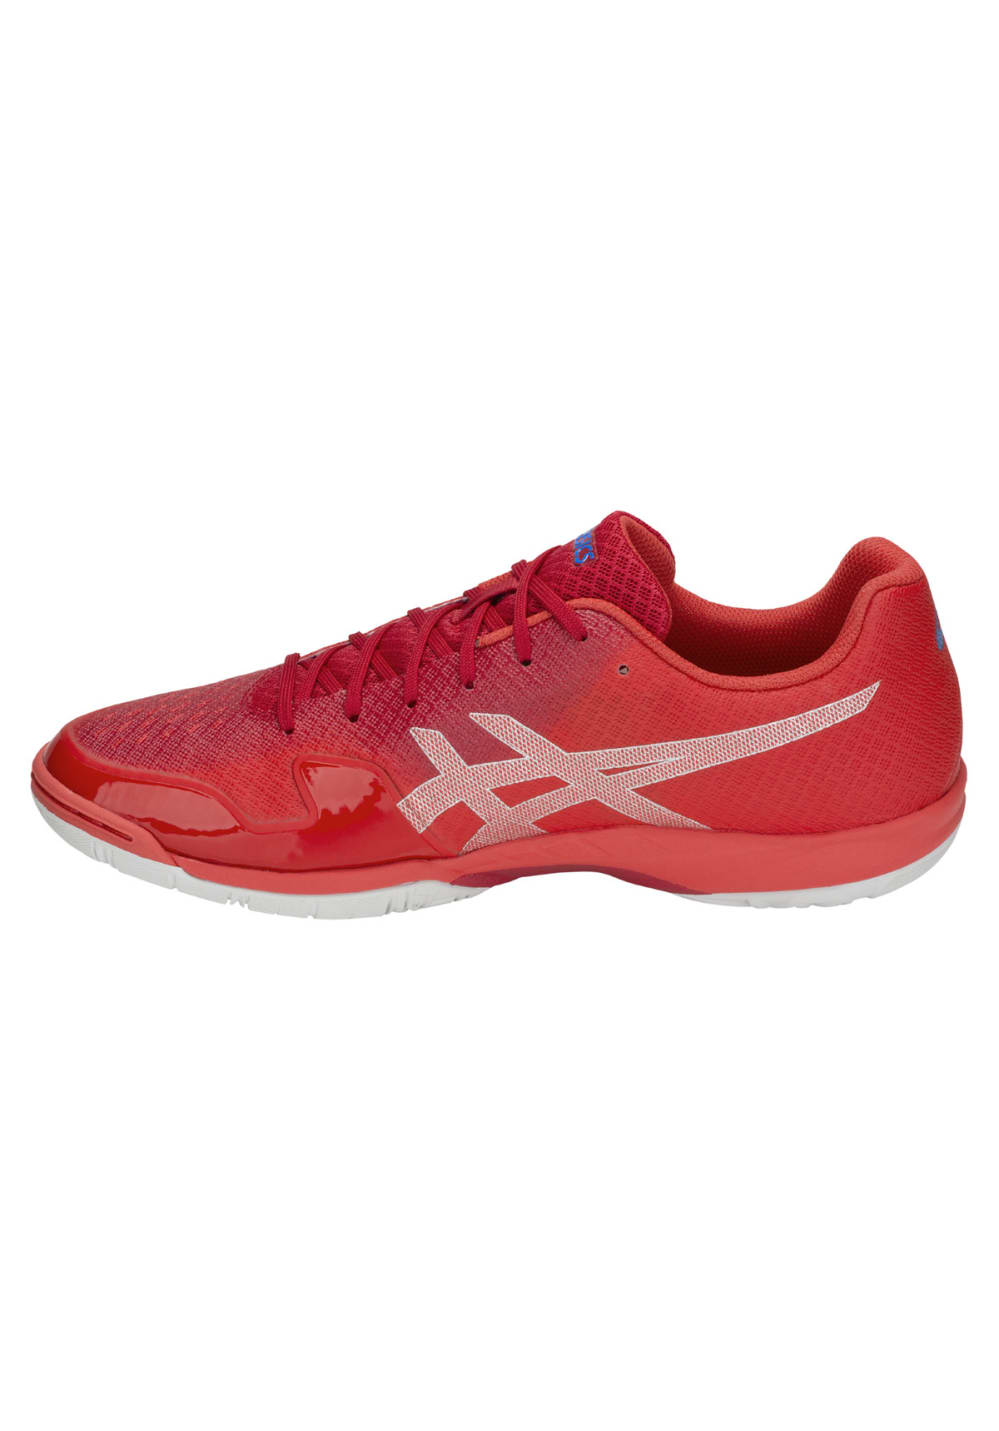 ASICS GEL Blade 6 Chaussures sports en salle pour Homme Rouge